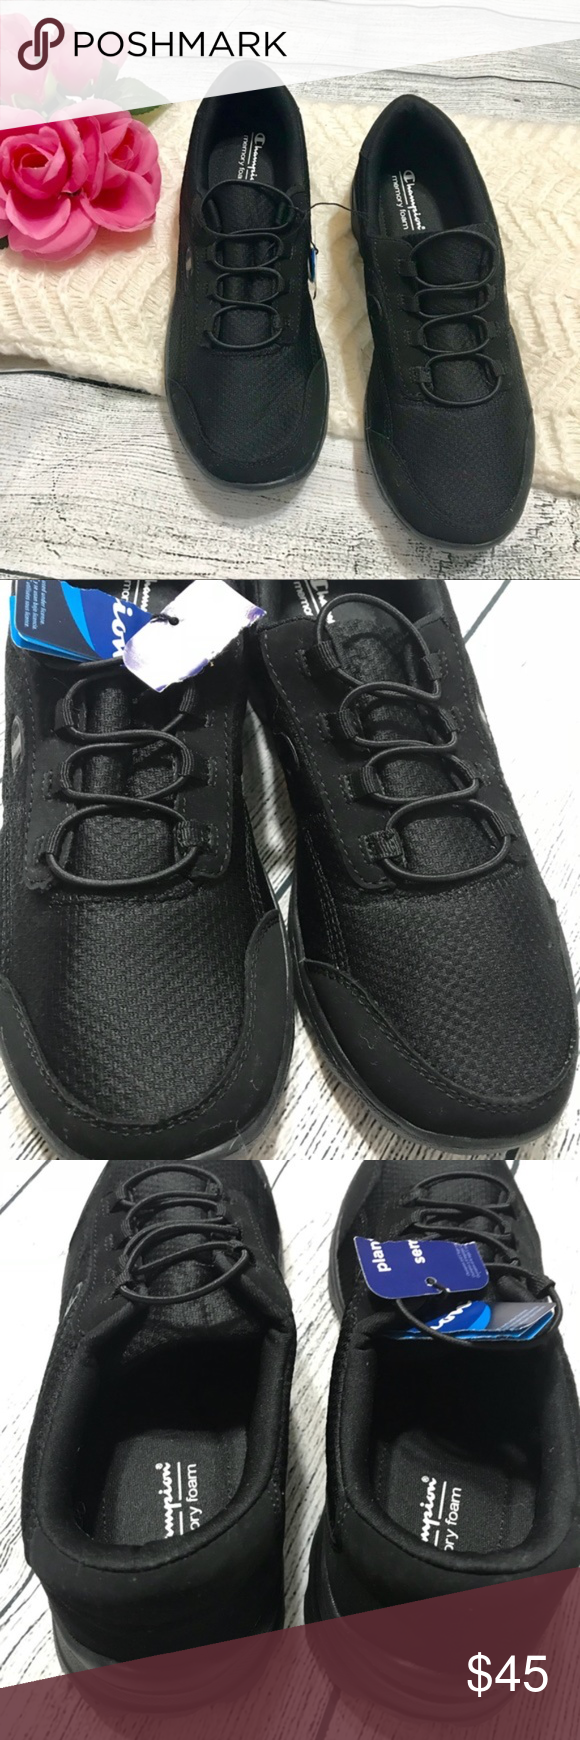 5c80c50088d Champion Women s Memory Foam Black Sneakers 7.5W Brand new with clipped  tags  Memory foam  Black  Item E793L Champion Shoes Sneakers